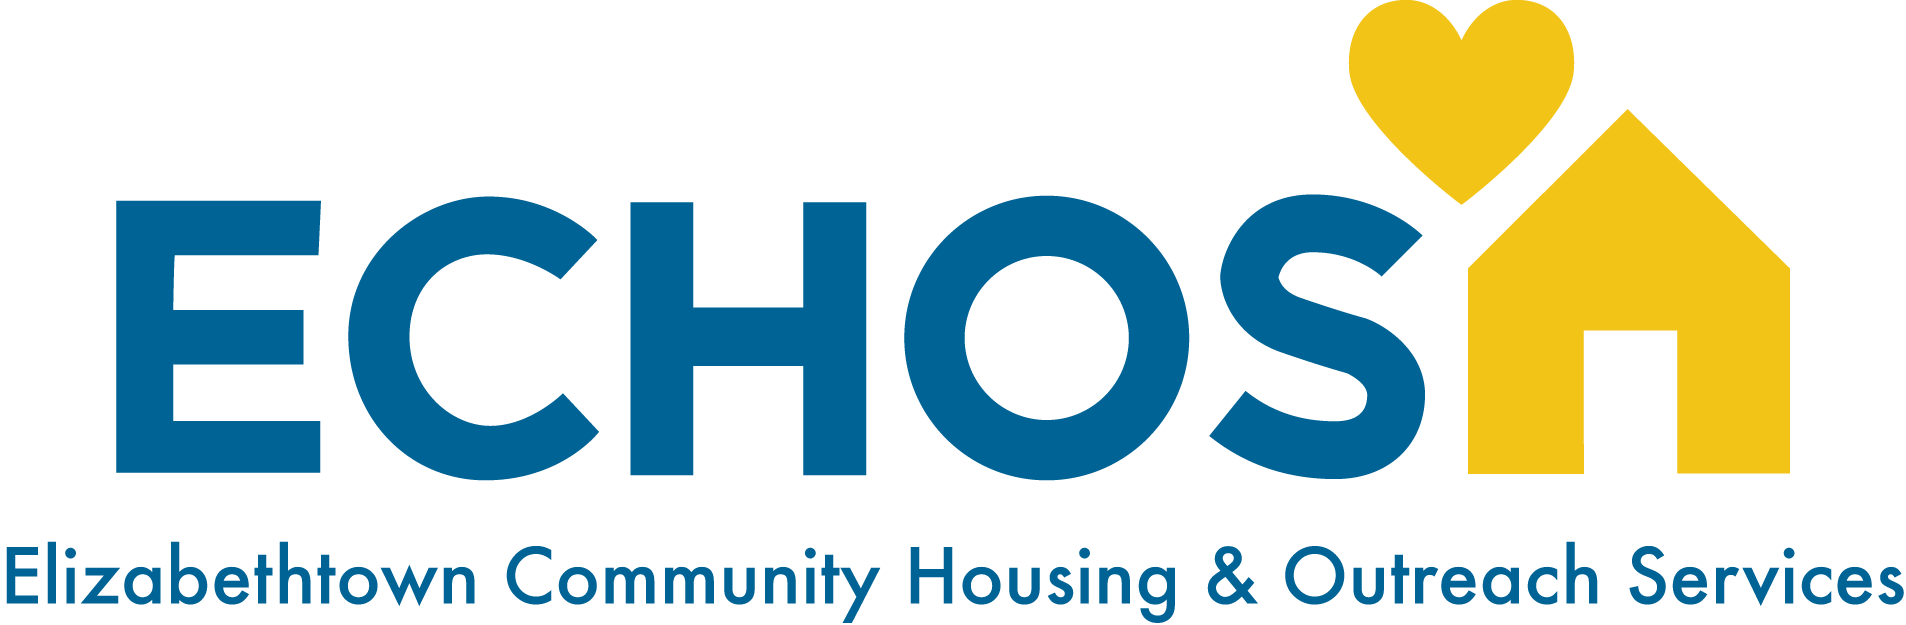 We support ECHOS  If you are in need of emergency housing or other assistance, click to visit the ECHOS website.